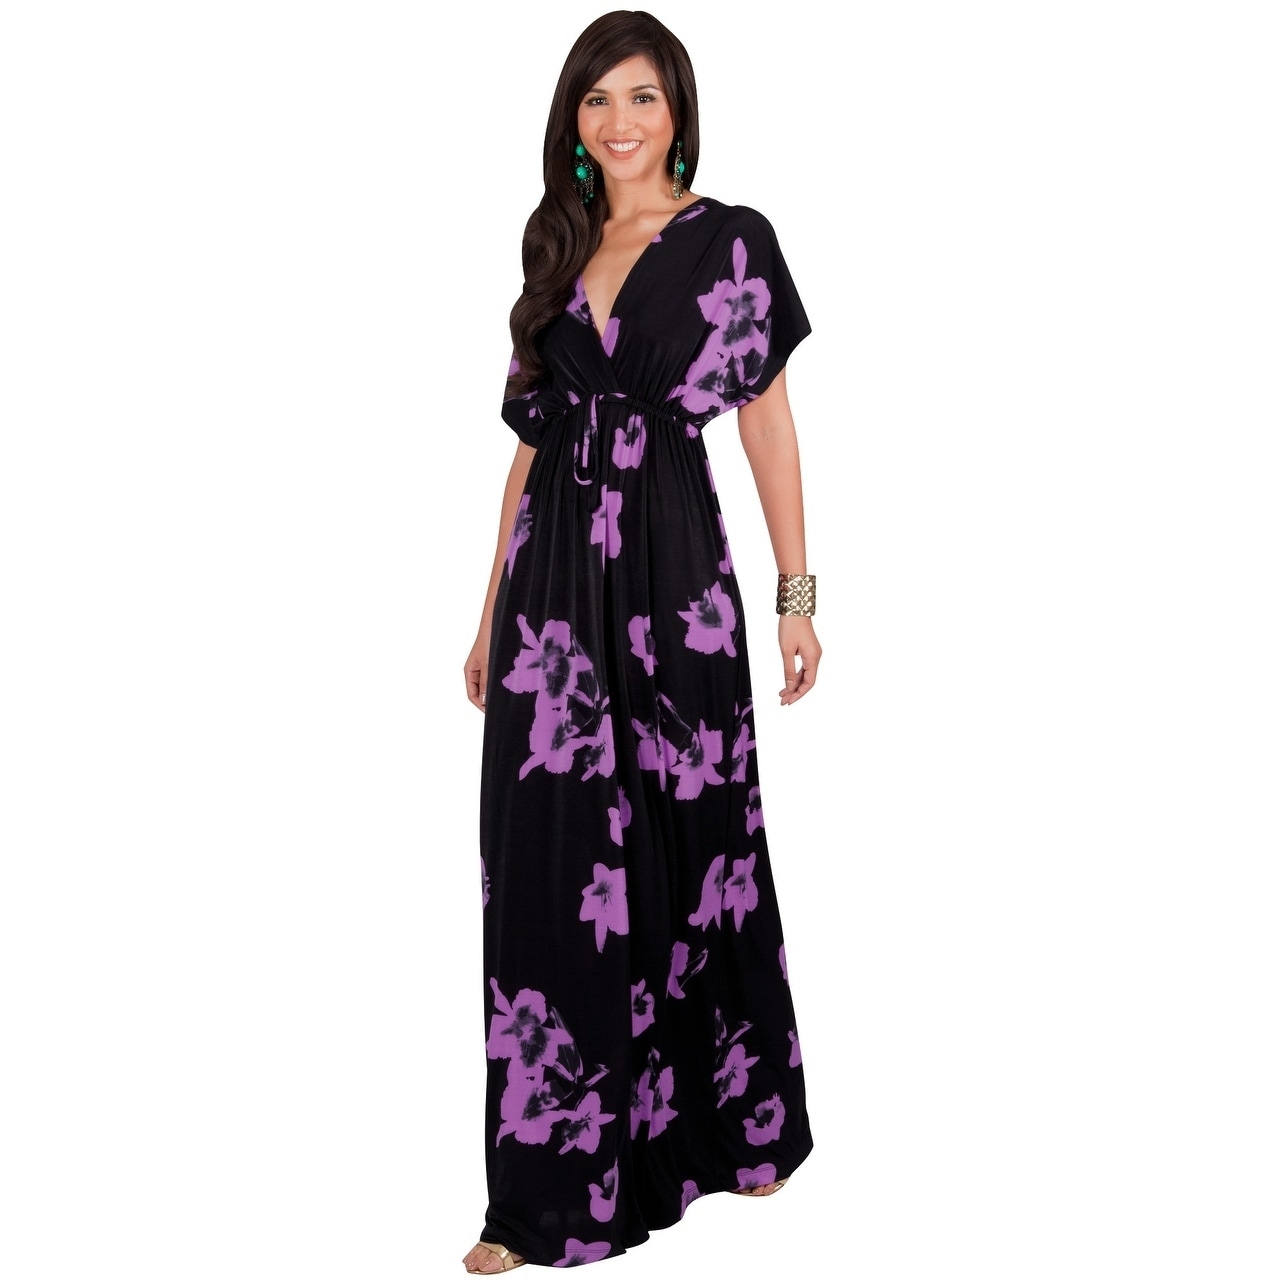 KOH KOH Womens Short Sleeves Floral Printed Bat Wing Deep V-Neck Maxi Dress 01fe4fe173